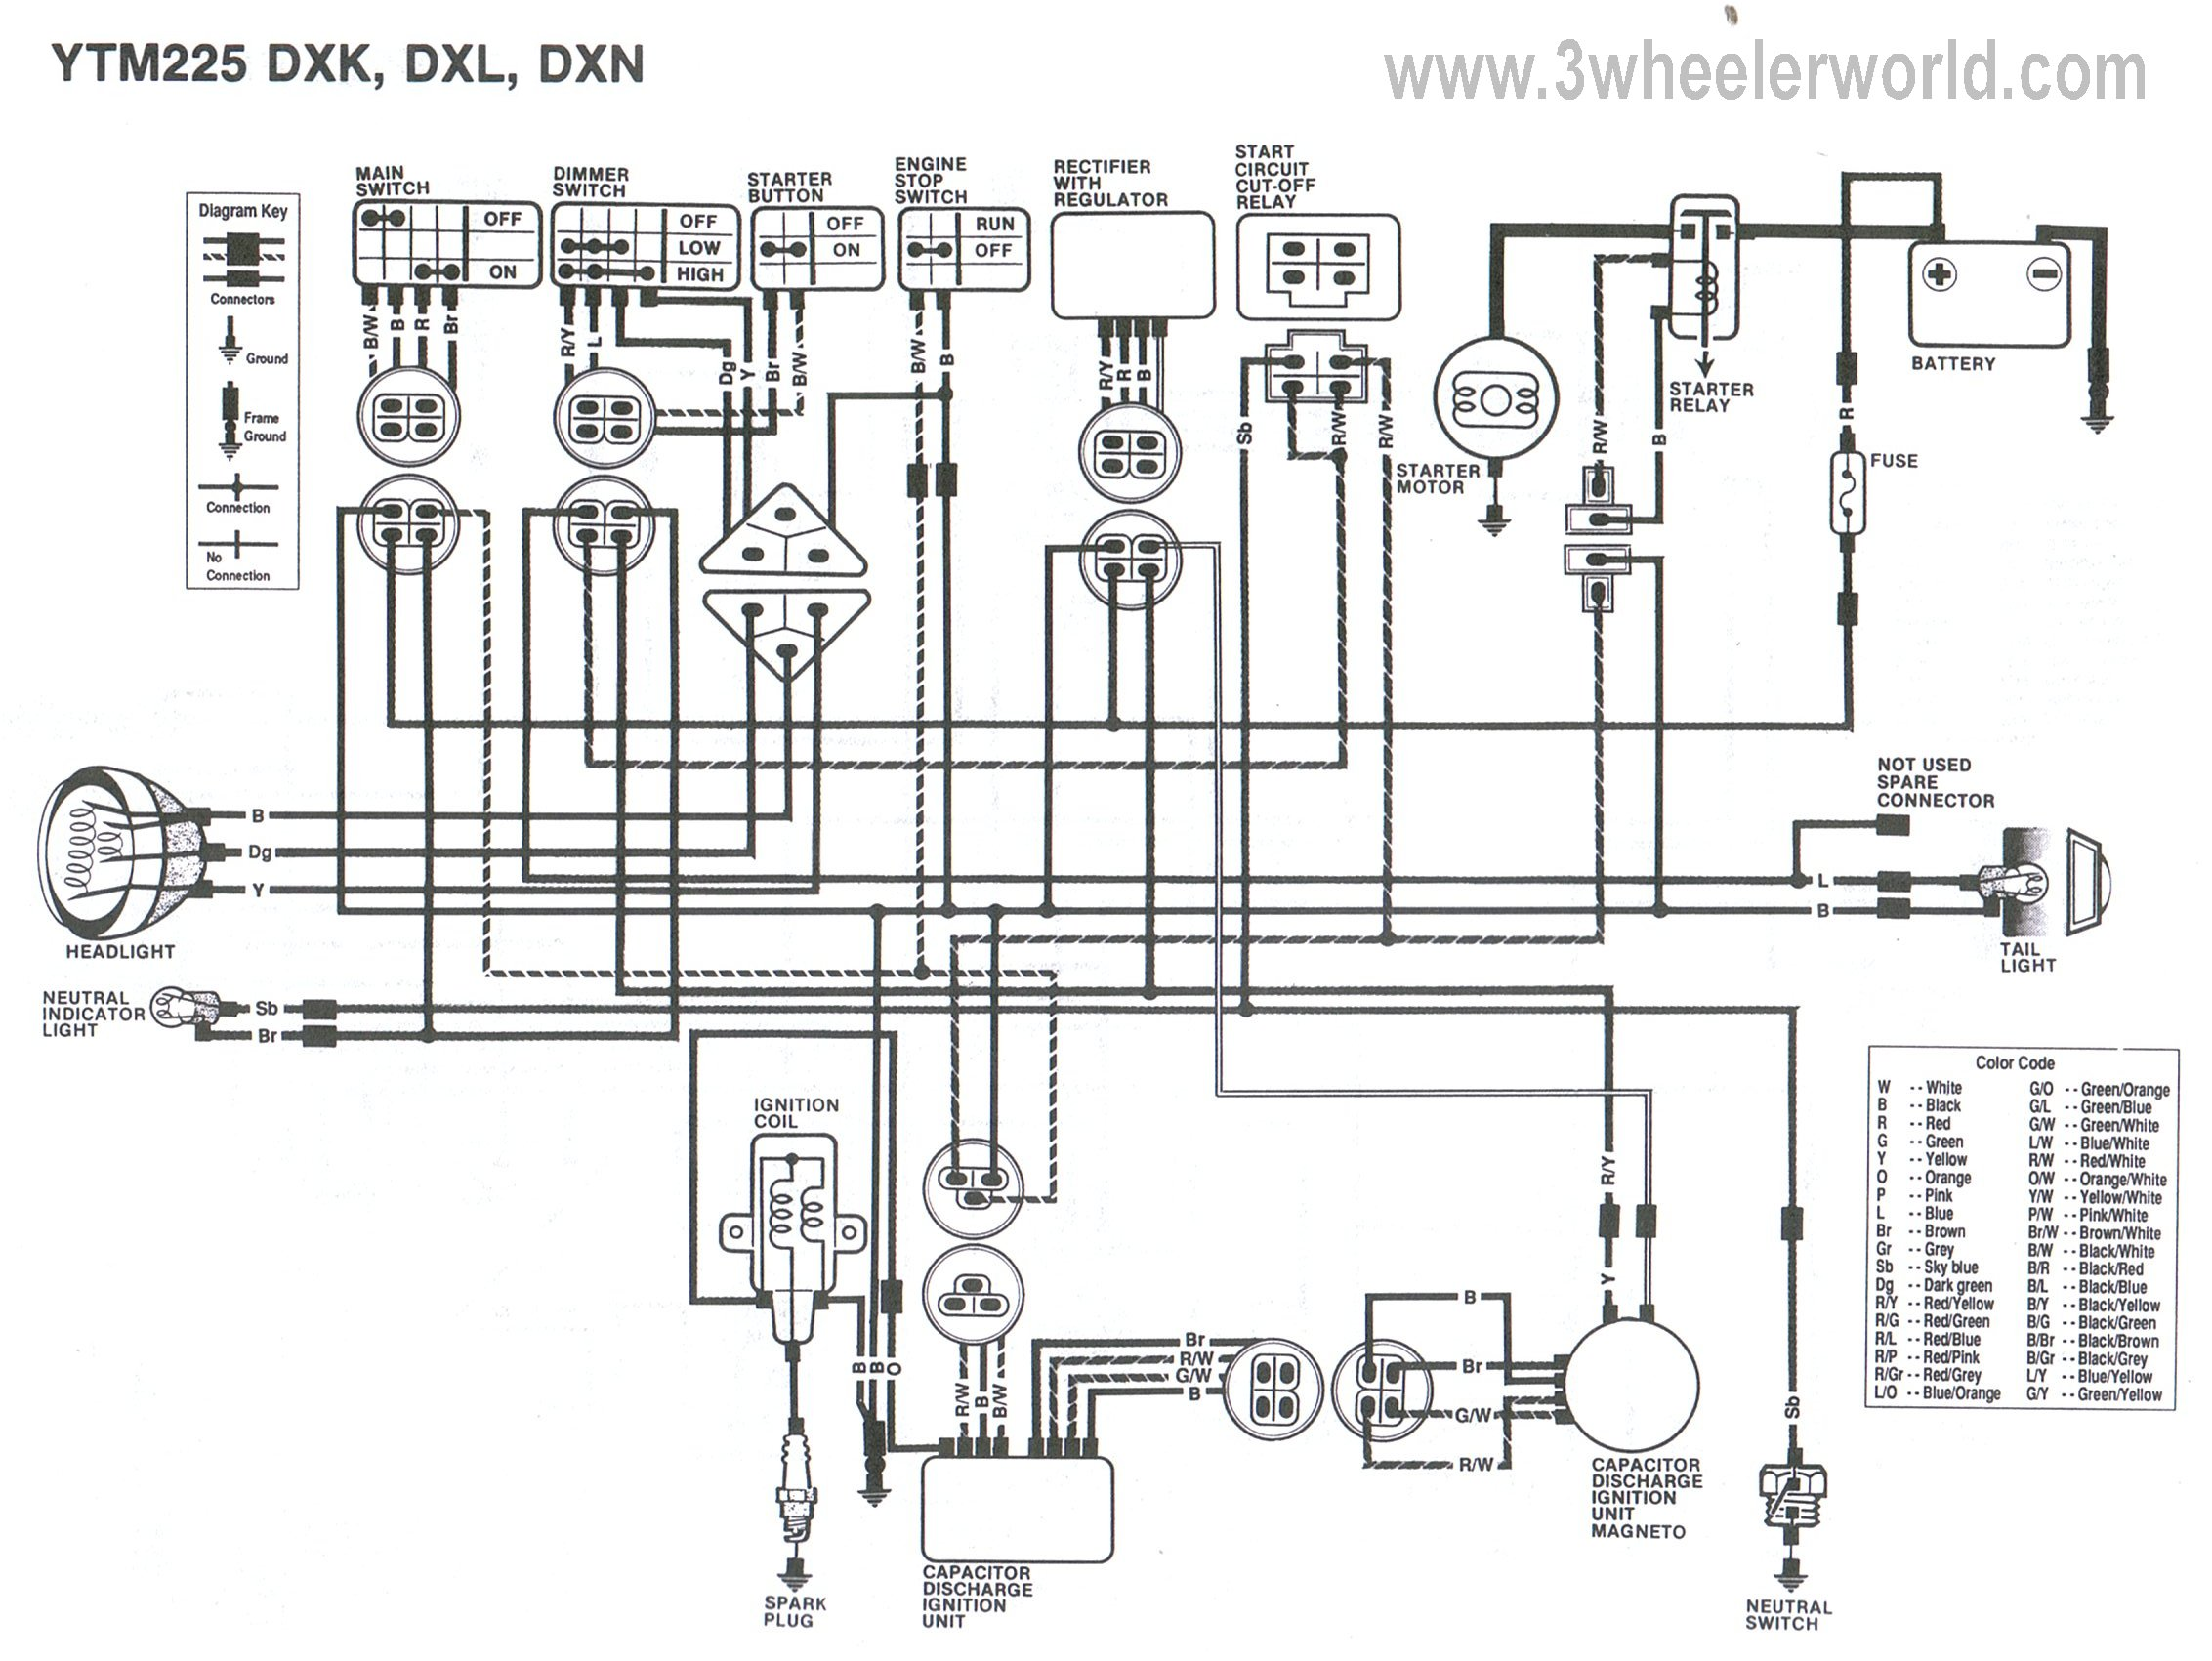 2001 Yamaha Warrior 350 Wiring Diagram from i1.wp.com